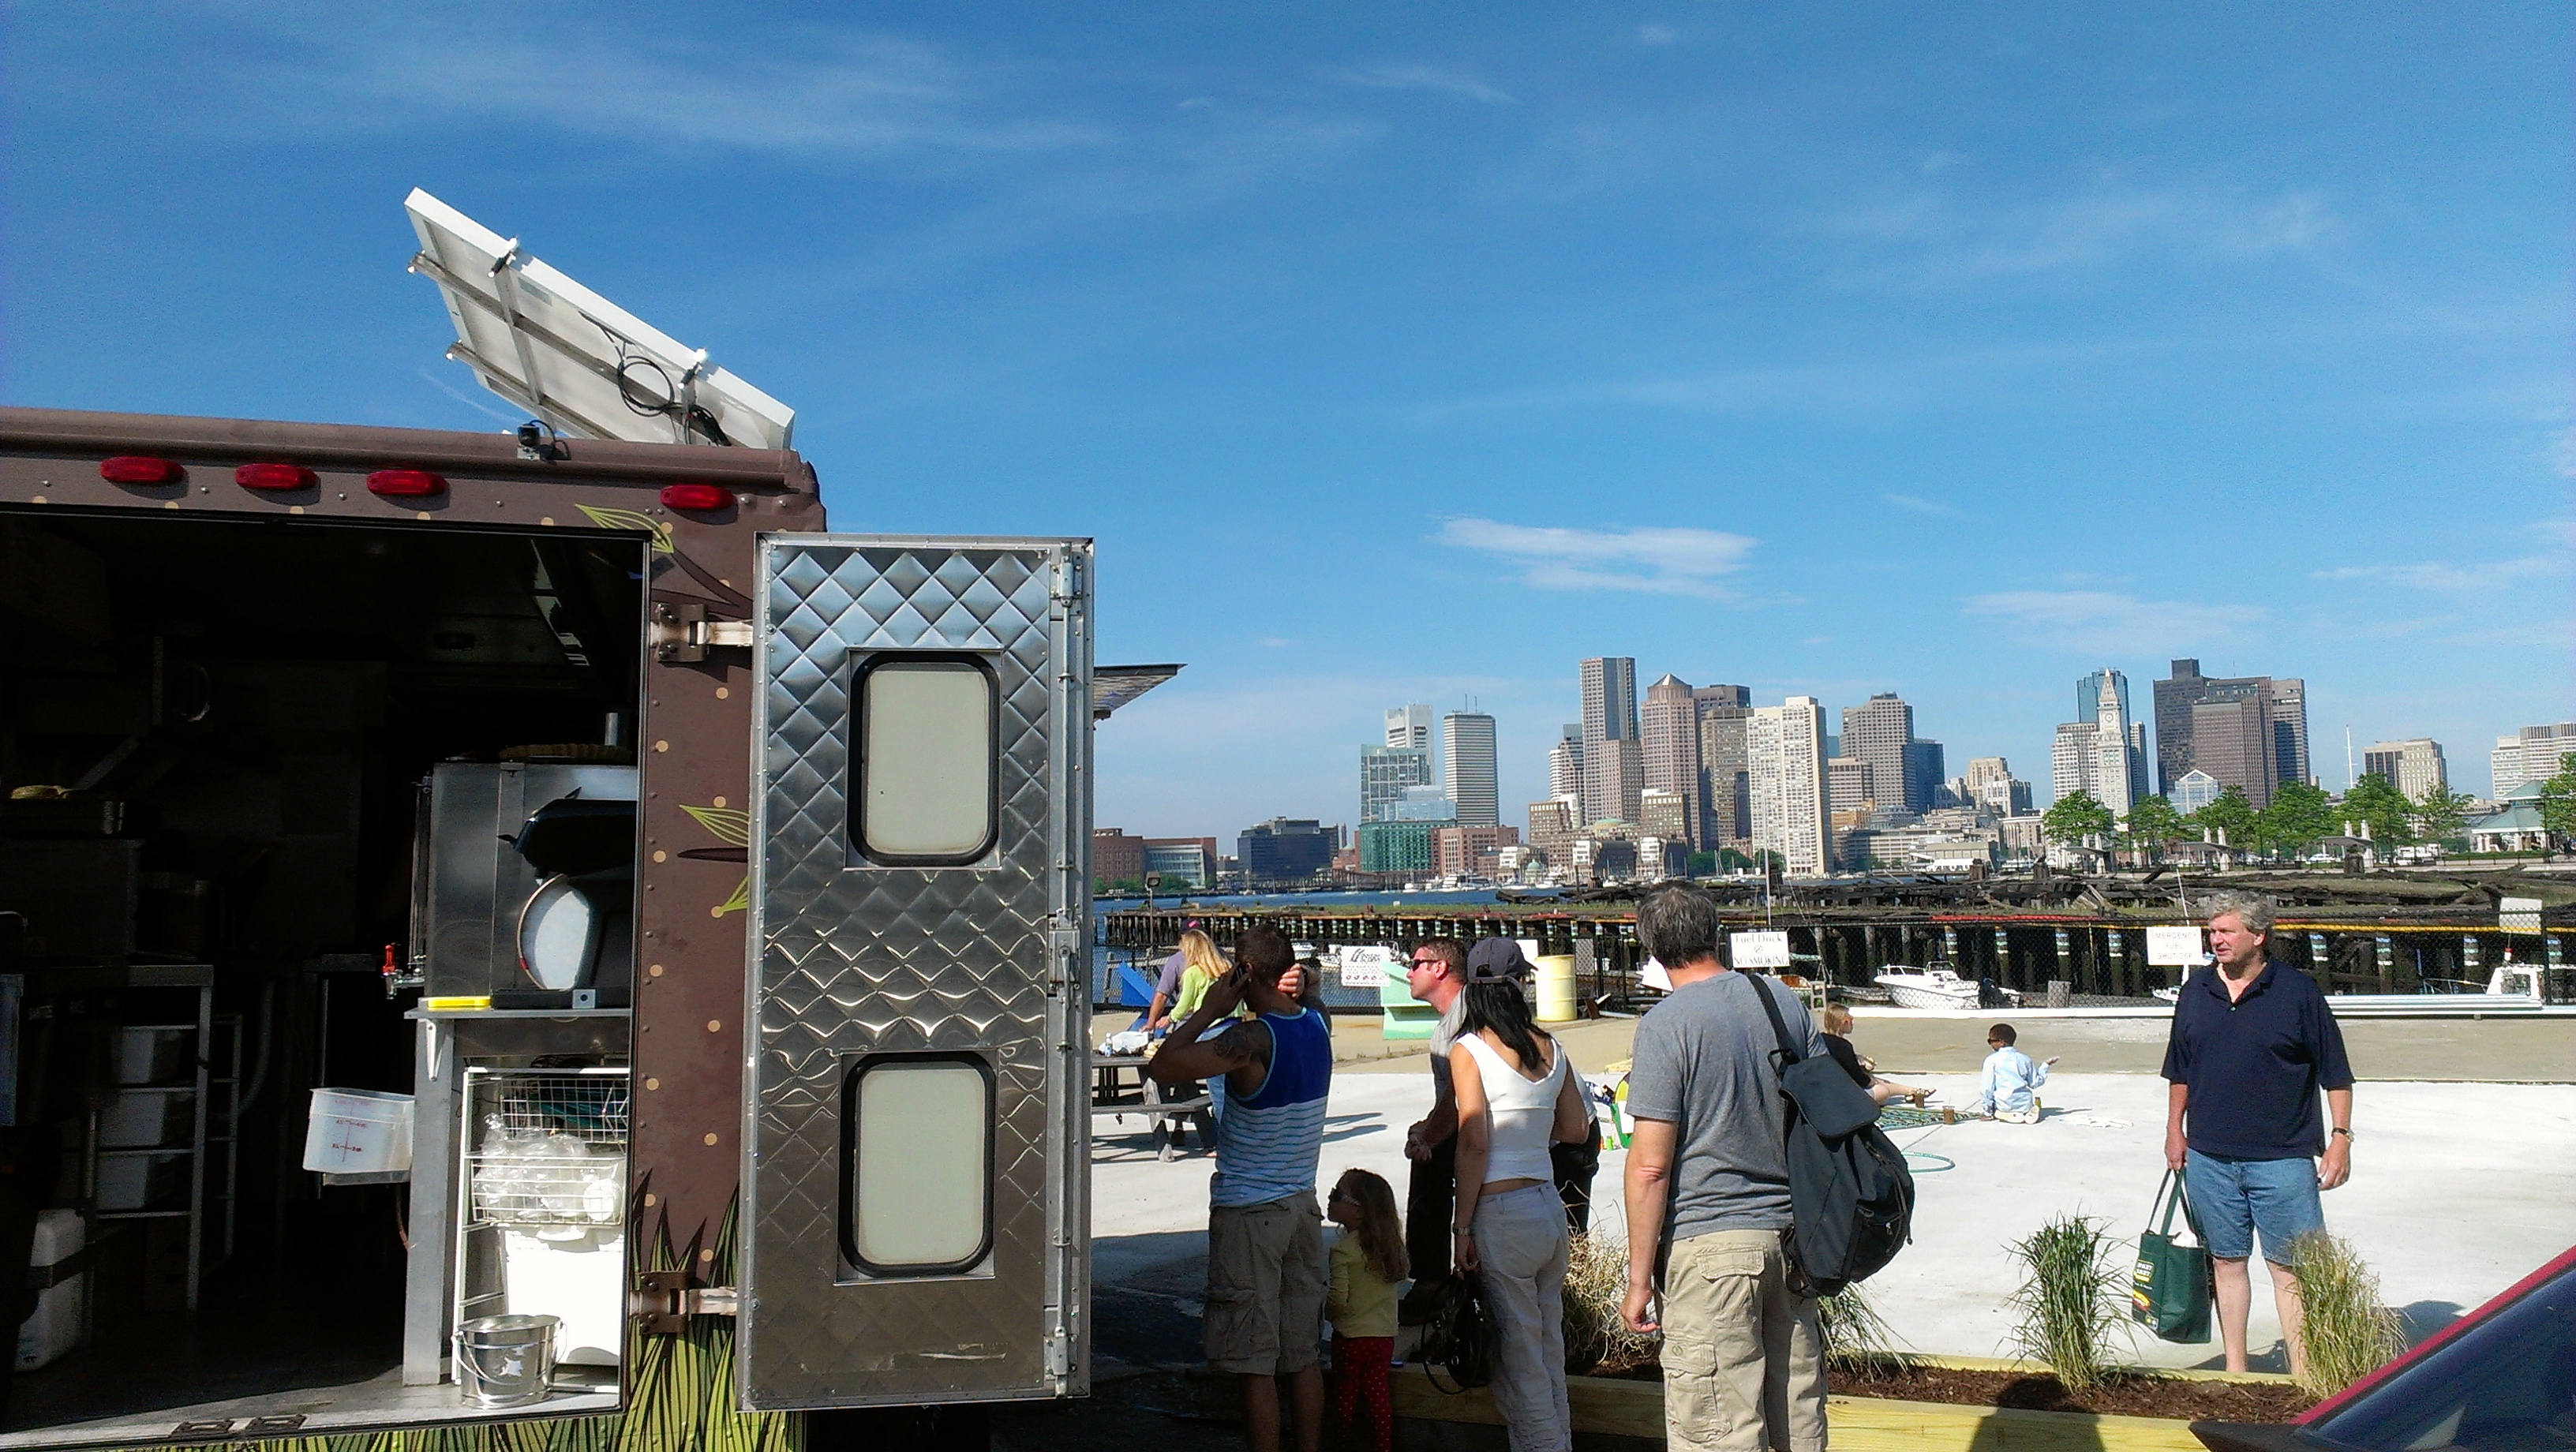 Green Bean Mobile Café Servin' Up Coffee, Community in the Shipyard